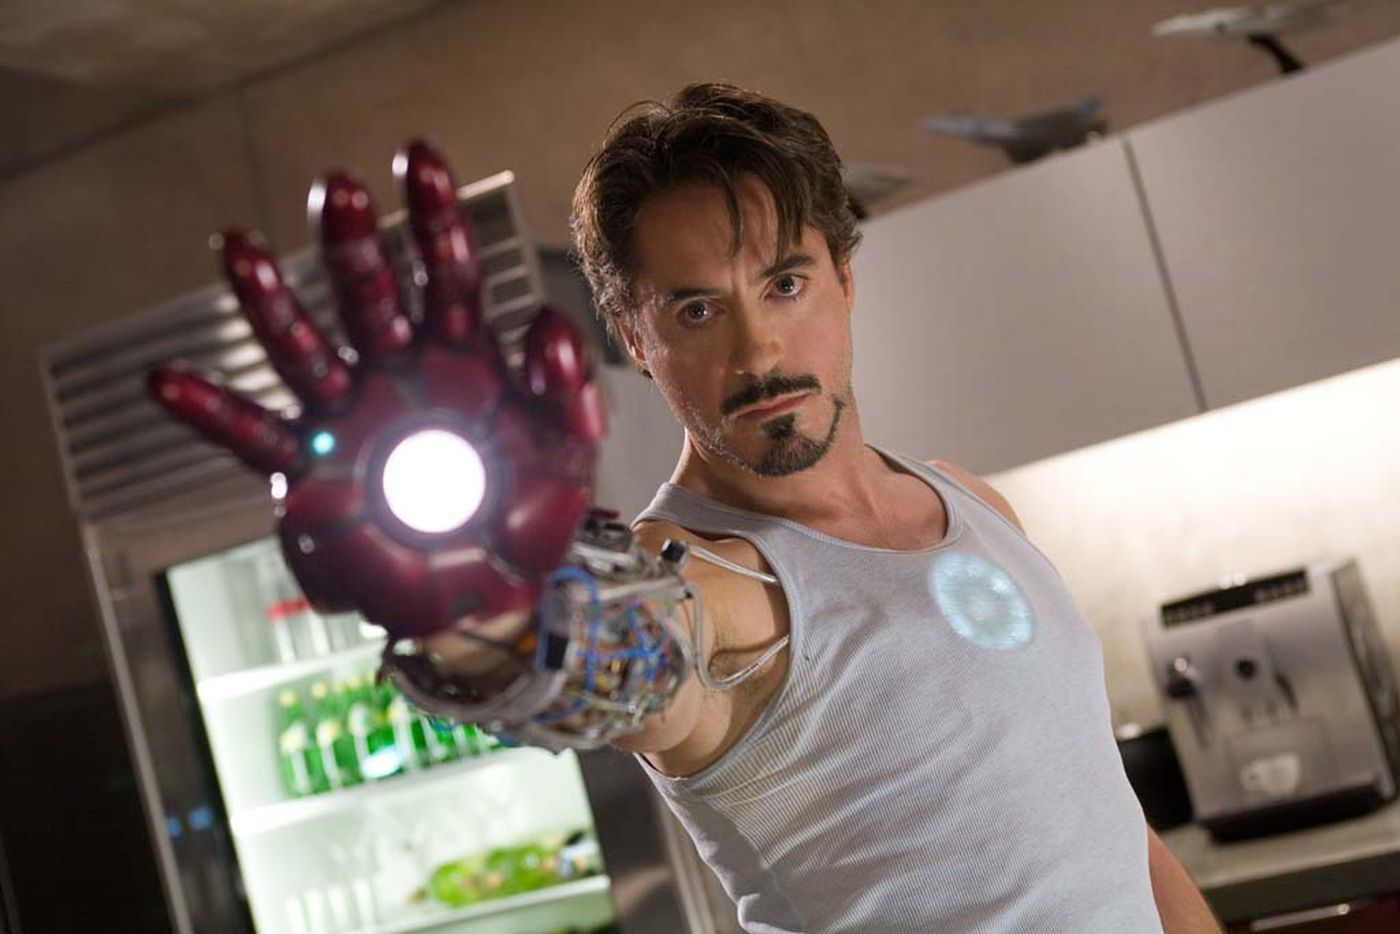 Robert Downey Jr. as billionaire industrialist Tony Stark aka Iron Man.